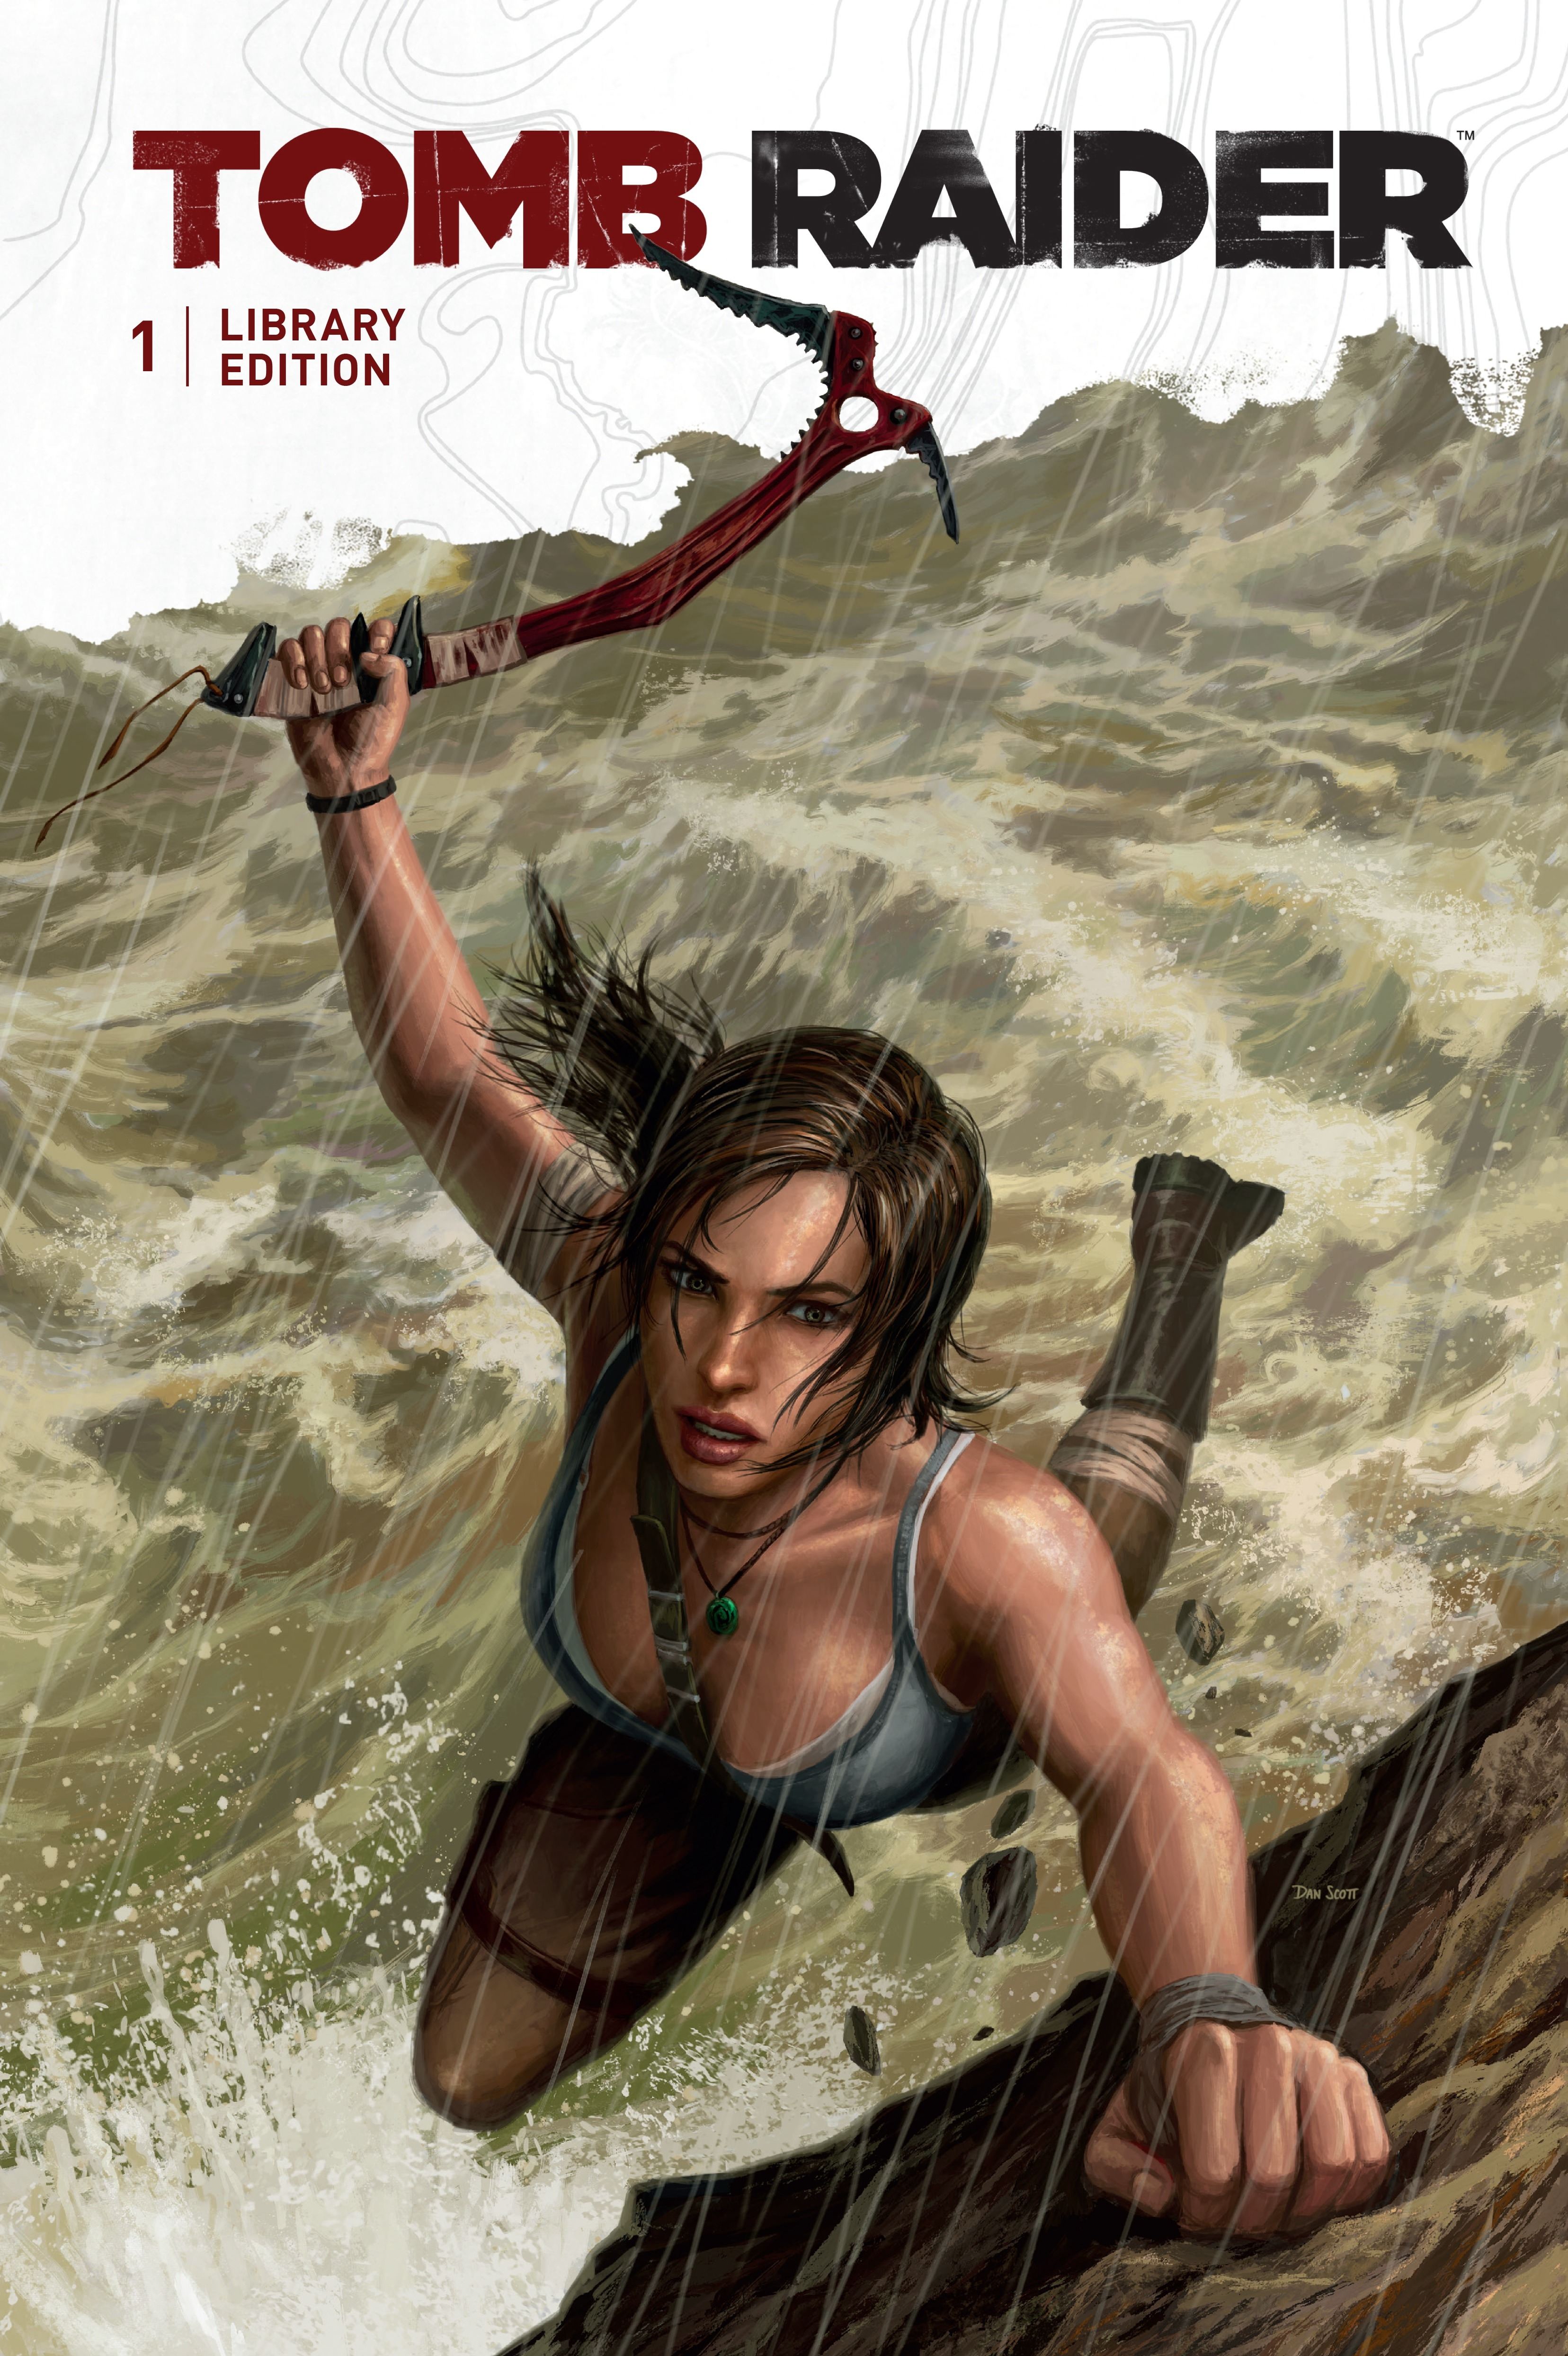 Tomb Raider Library Edition Volume 1 By Gail Simone Penguin